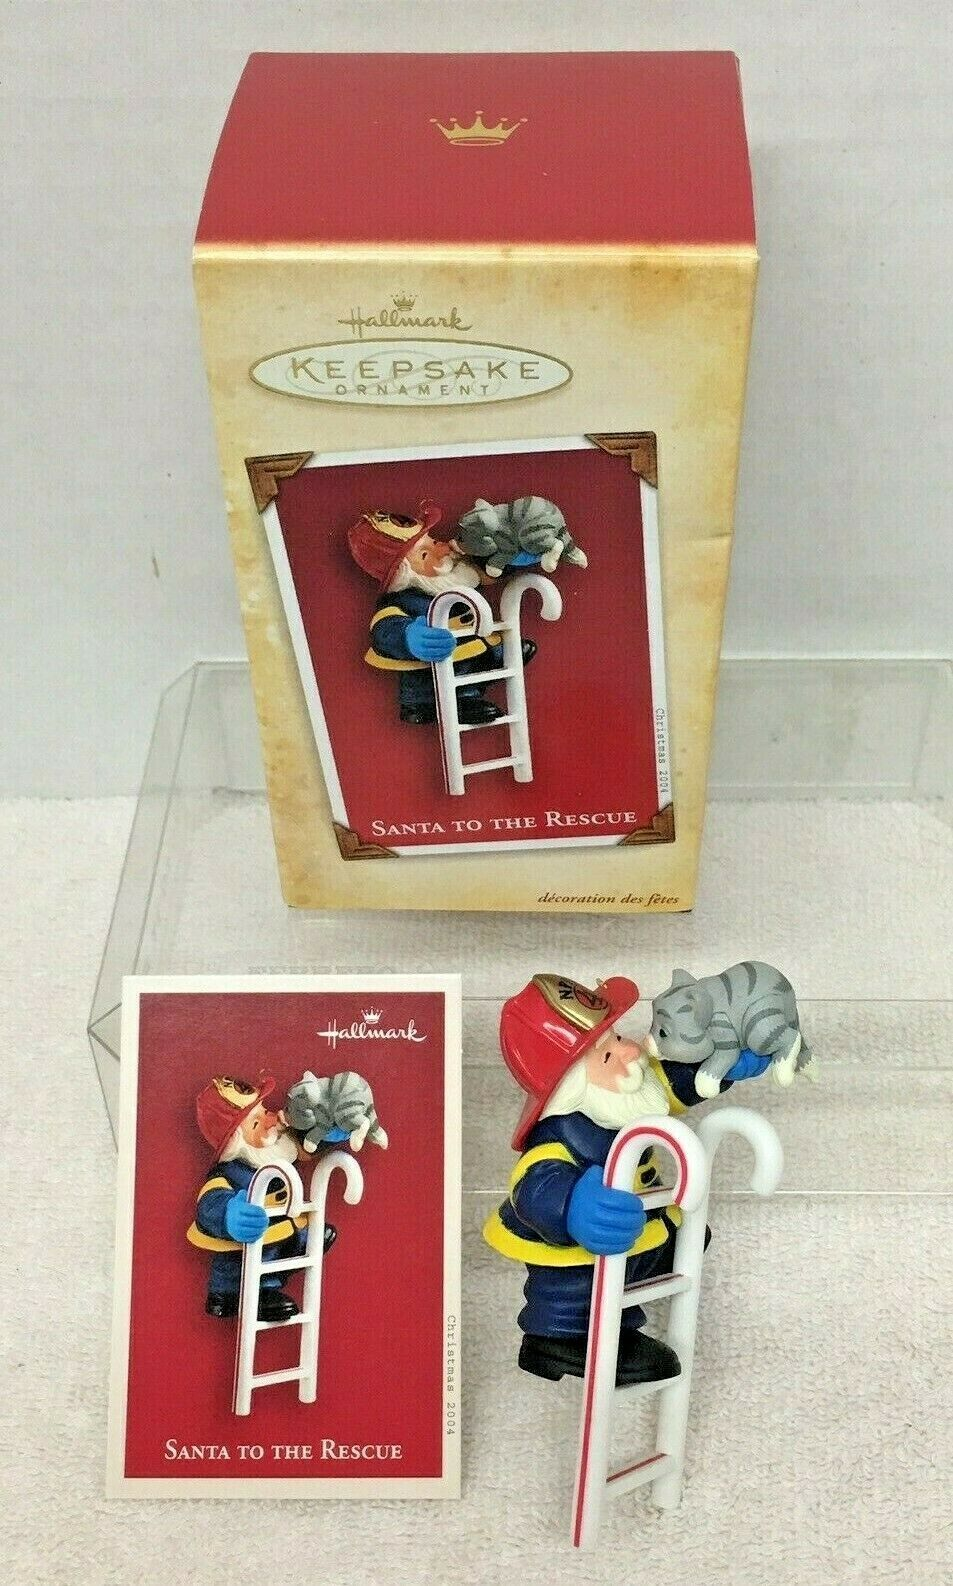 Primary image for 2004 Santa to the Rescue Hallmark Christmas Tree Ornament MIB w Price Tag